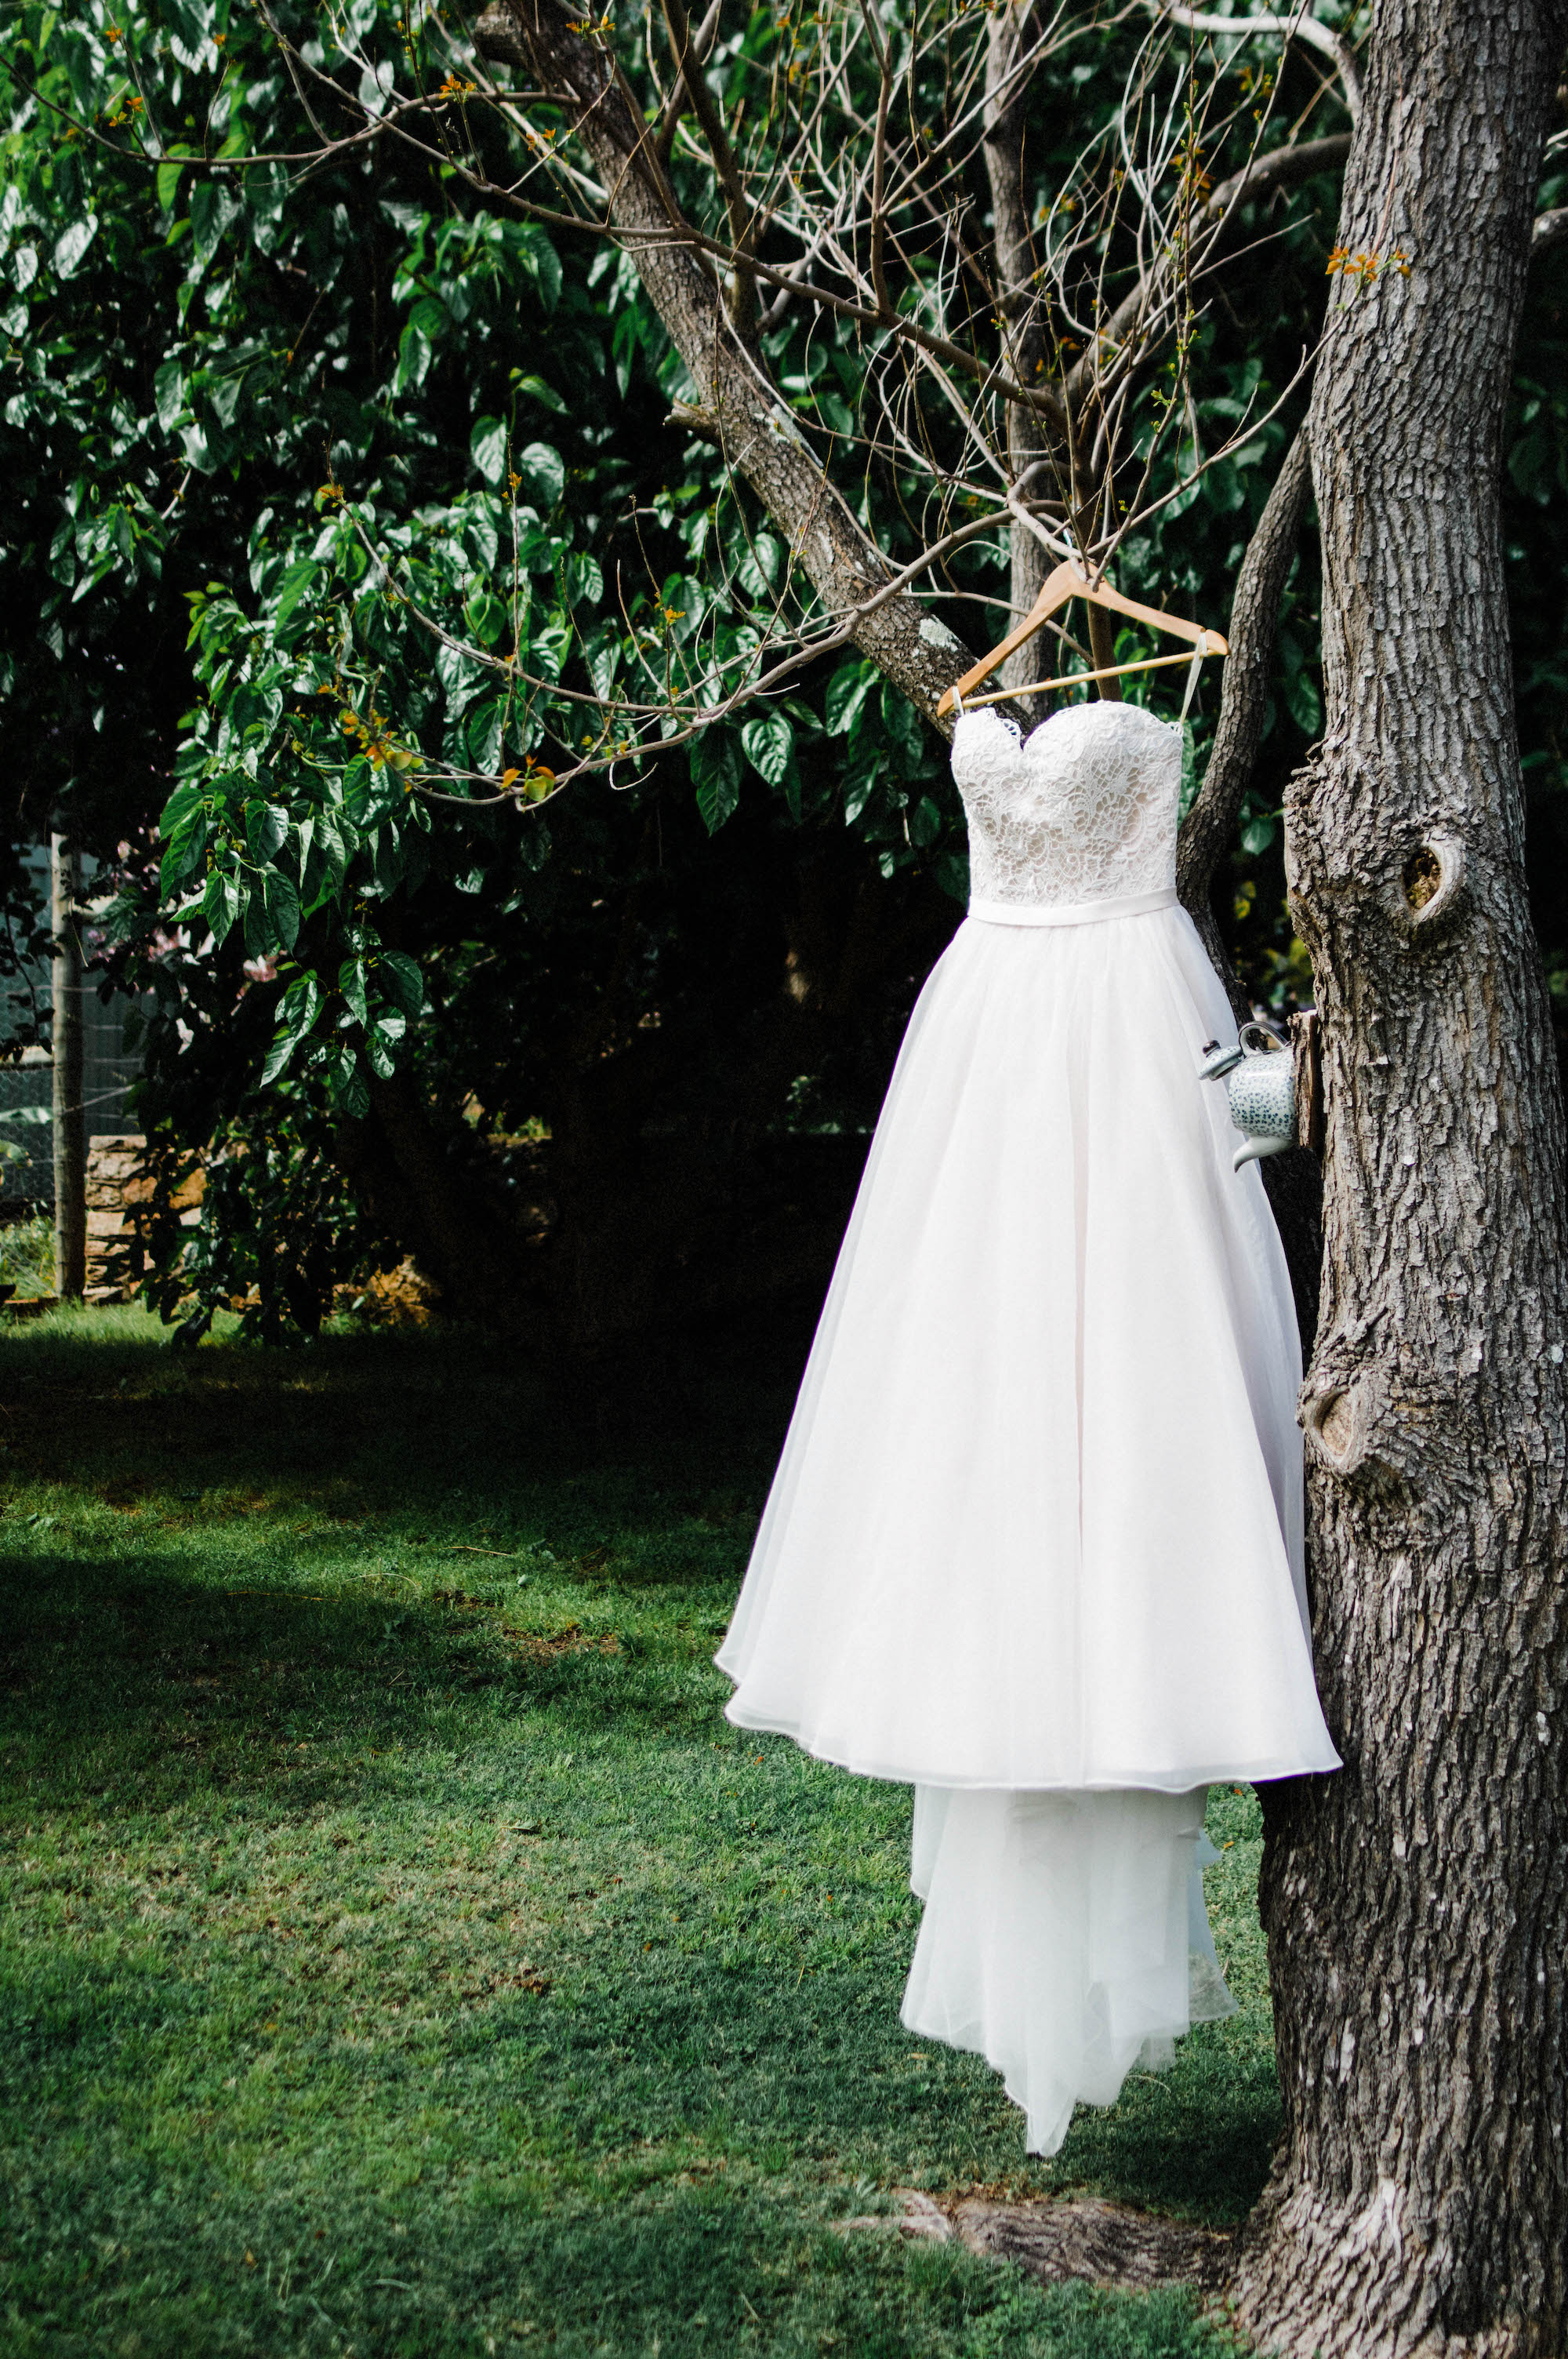 The bride's dress in her garden before she gets dressed.